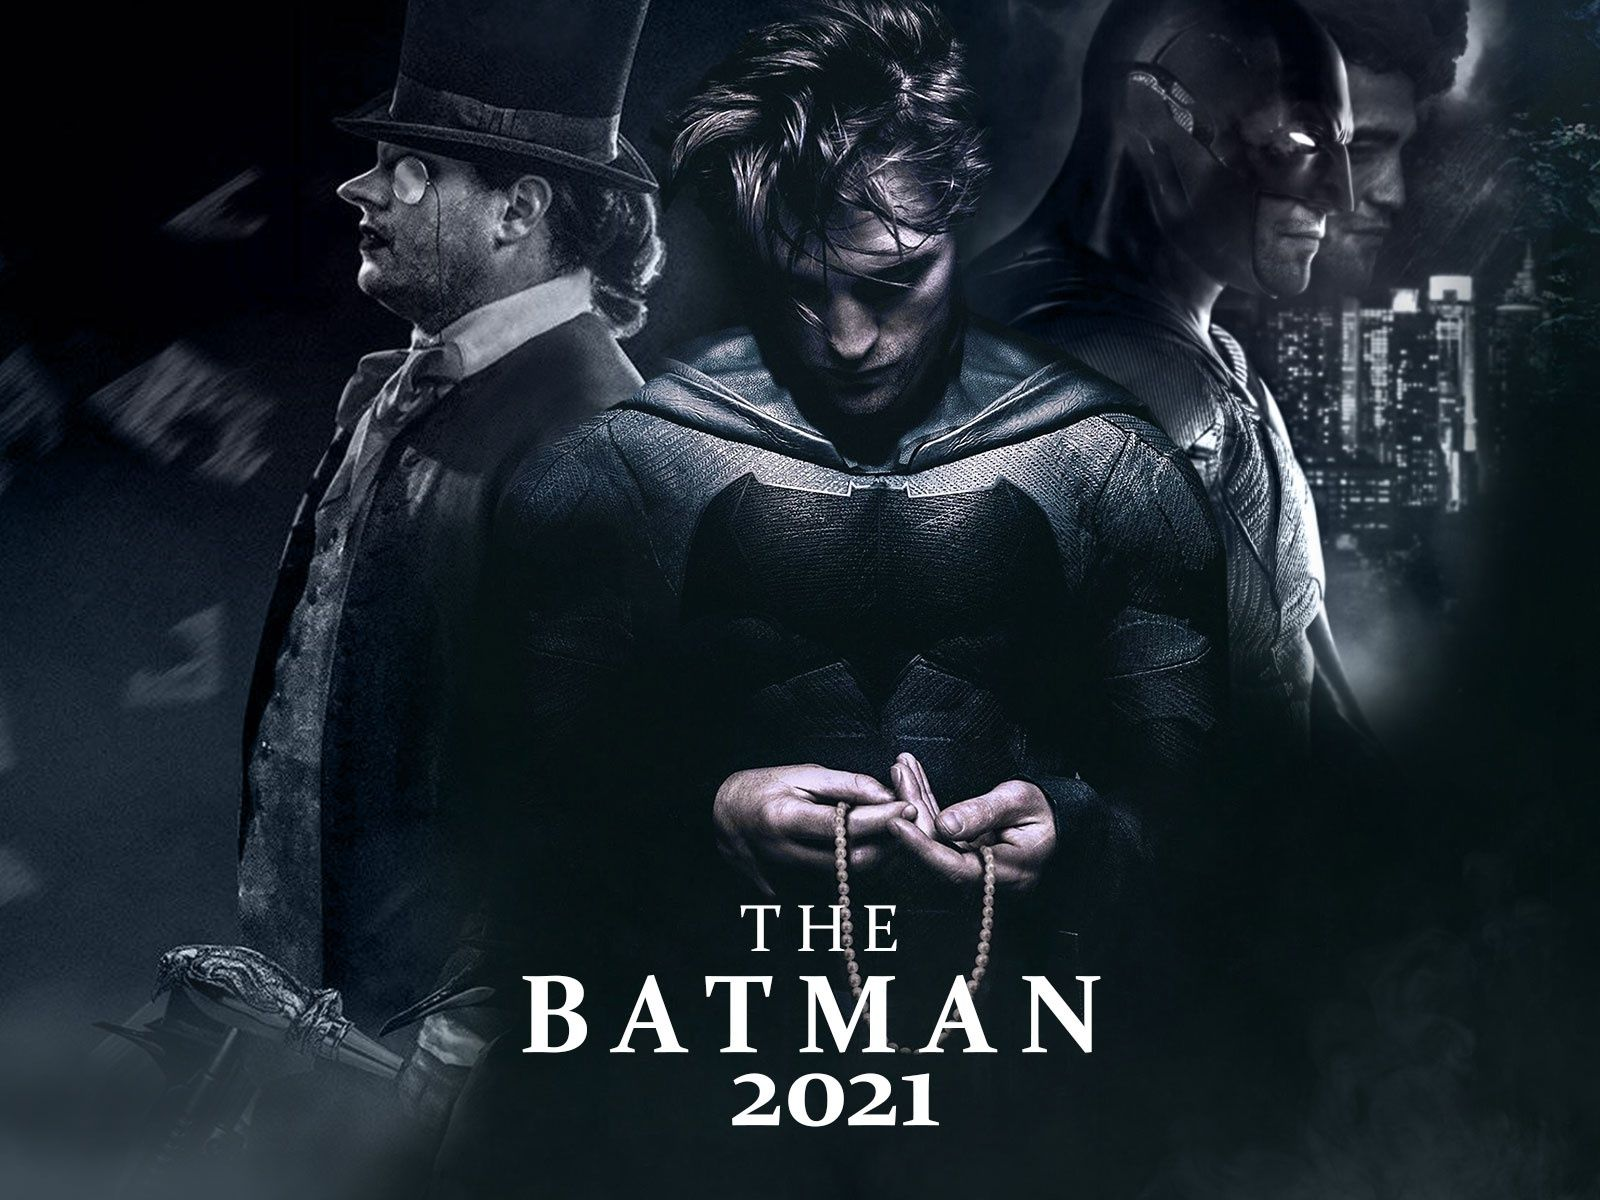 The Batman 2021 Movie Poster Edit Batman Hollywood Trailer Batman Movie